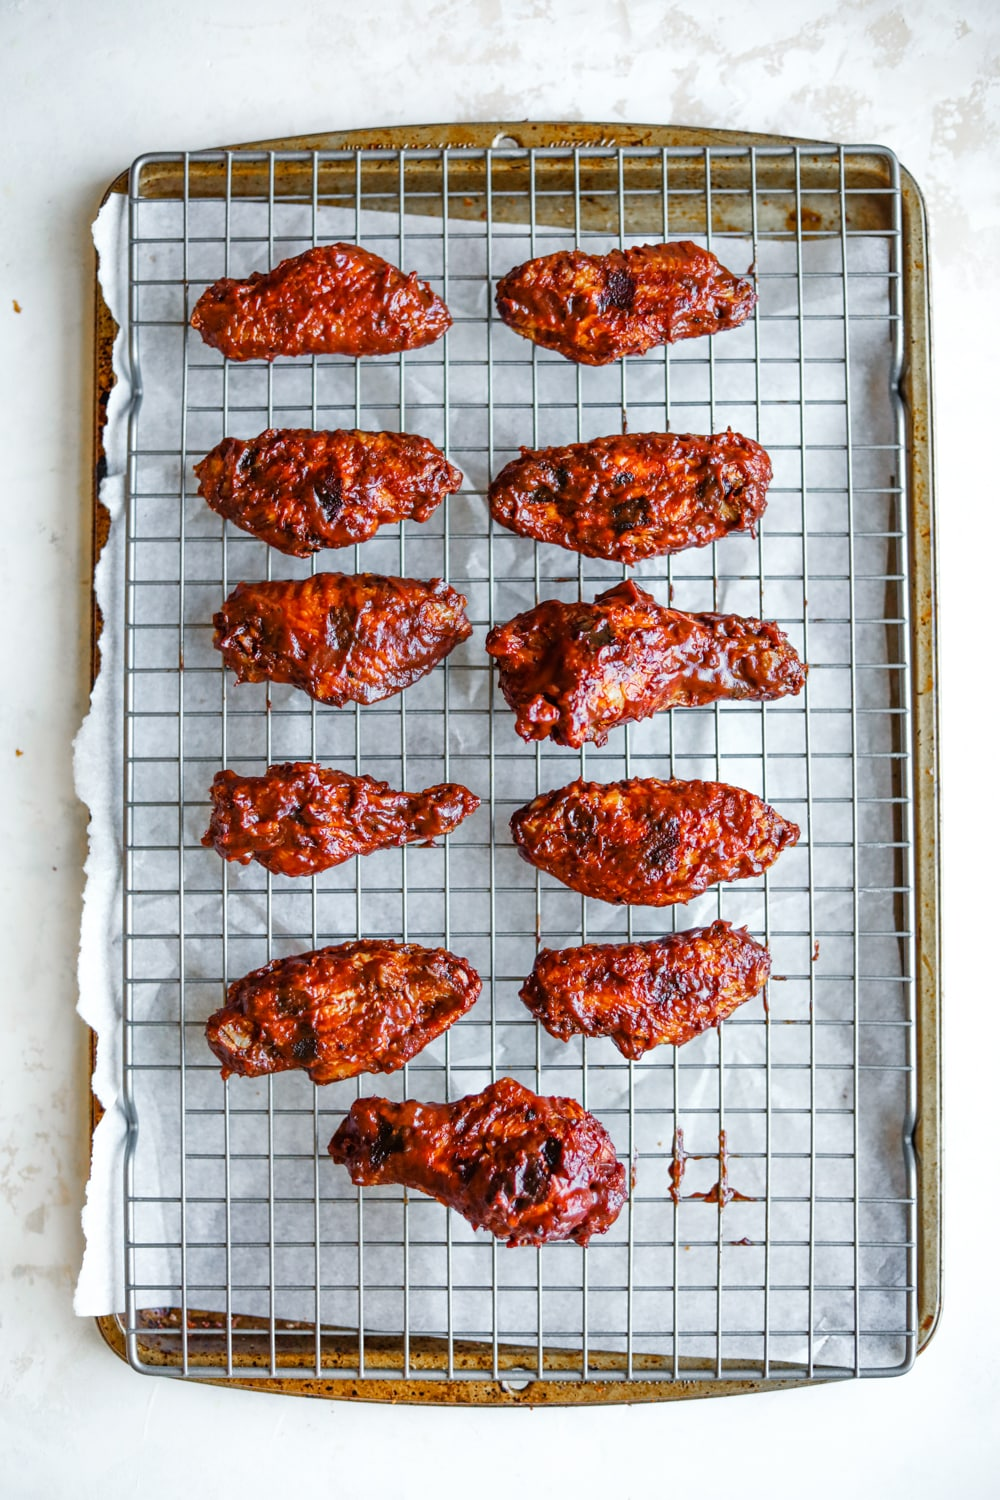 11 BBQ chicken wings on a drying rack that's set over a baking sheet.